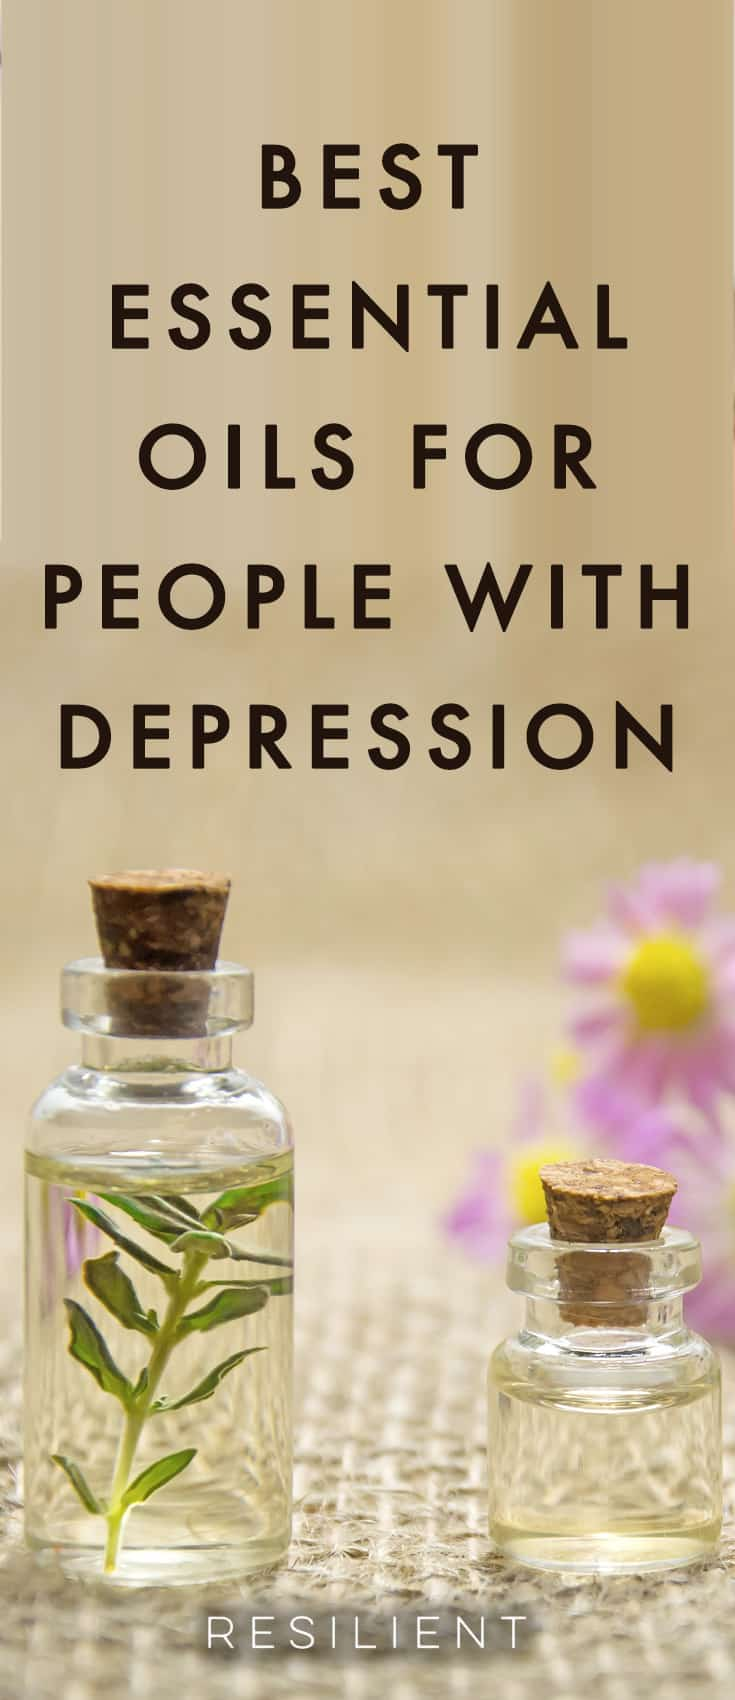 Have you ever tried using essential oils in your life? They can be a very soothing and uplifting natural addition to your life to enhance your mood and promote relaxation. Here are the 8 best essential oils for depression and anxiety.